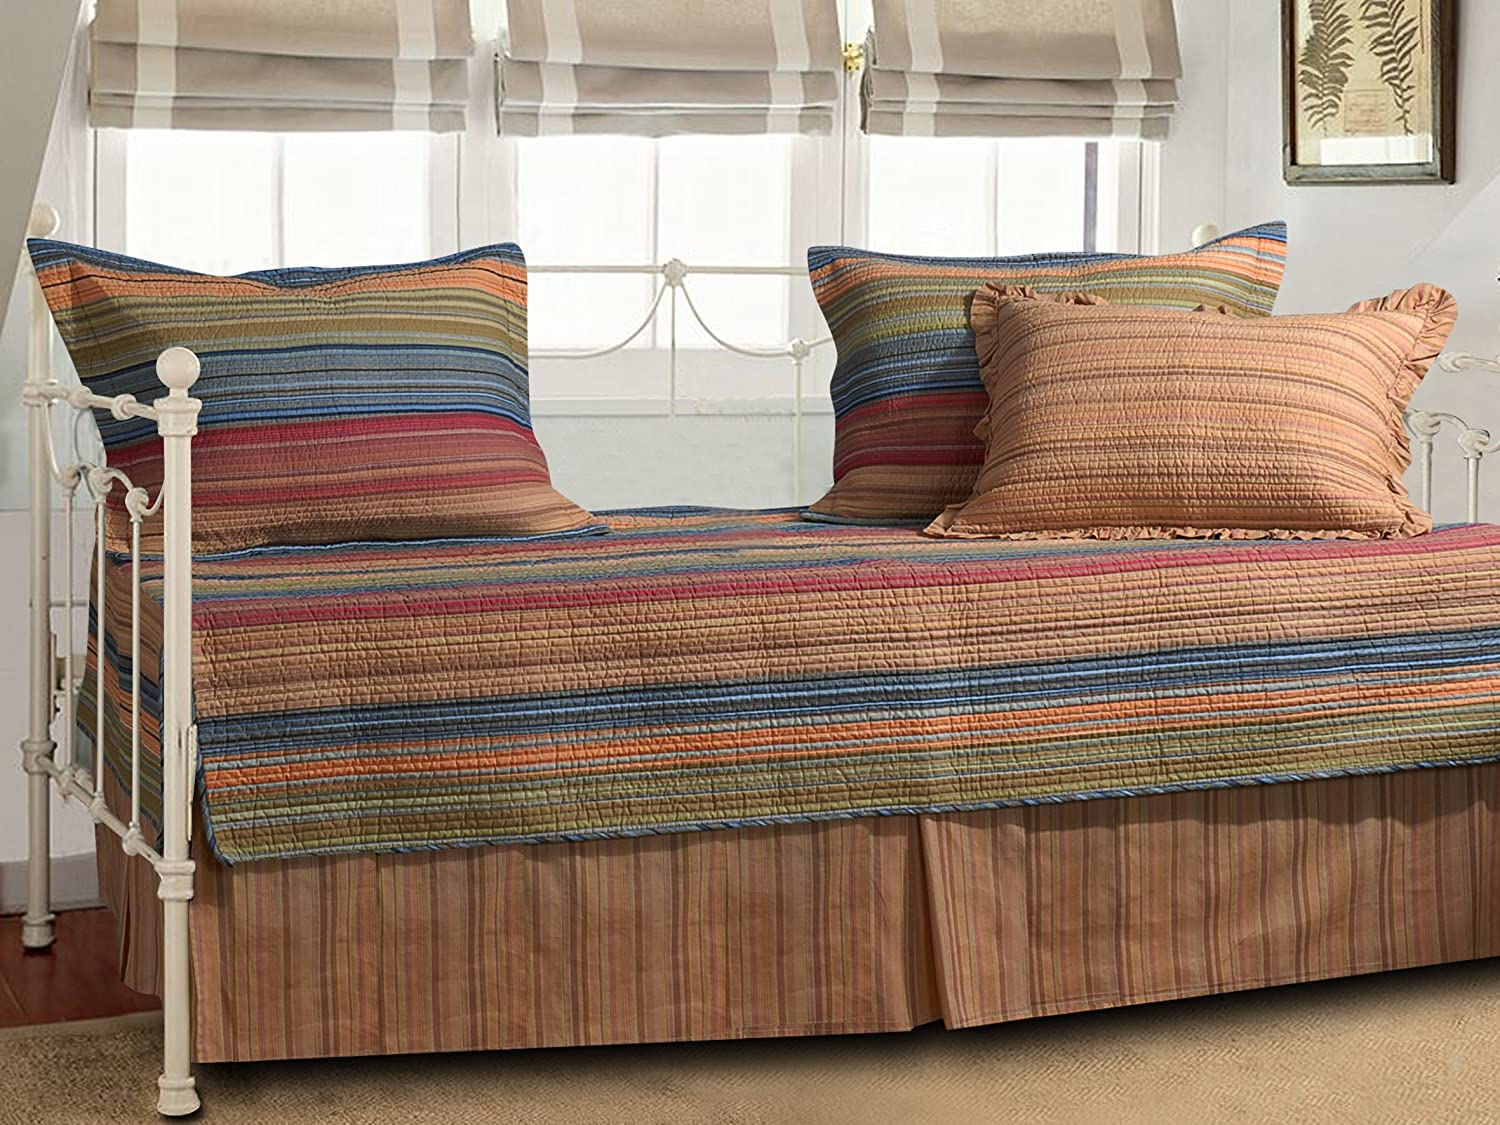 Modern daybed bedding - Greenland Home Katy 5 Piece Daybed Set